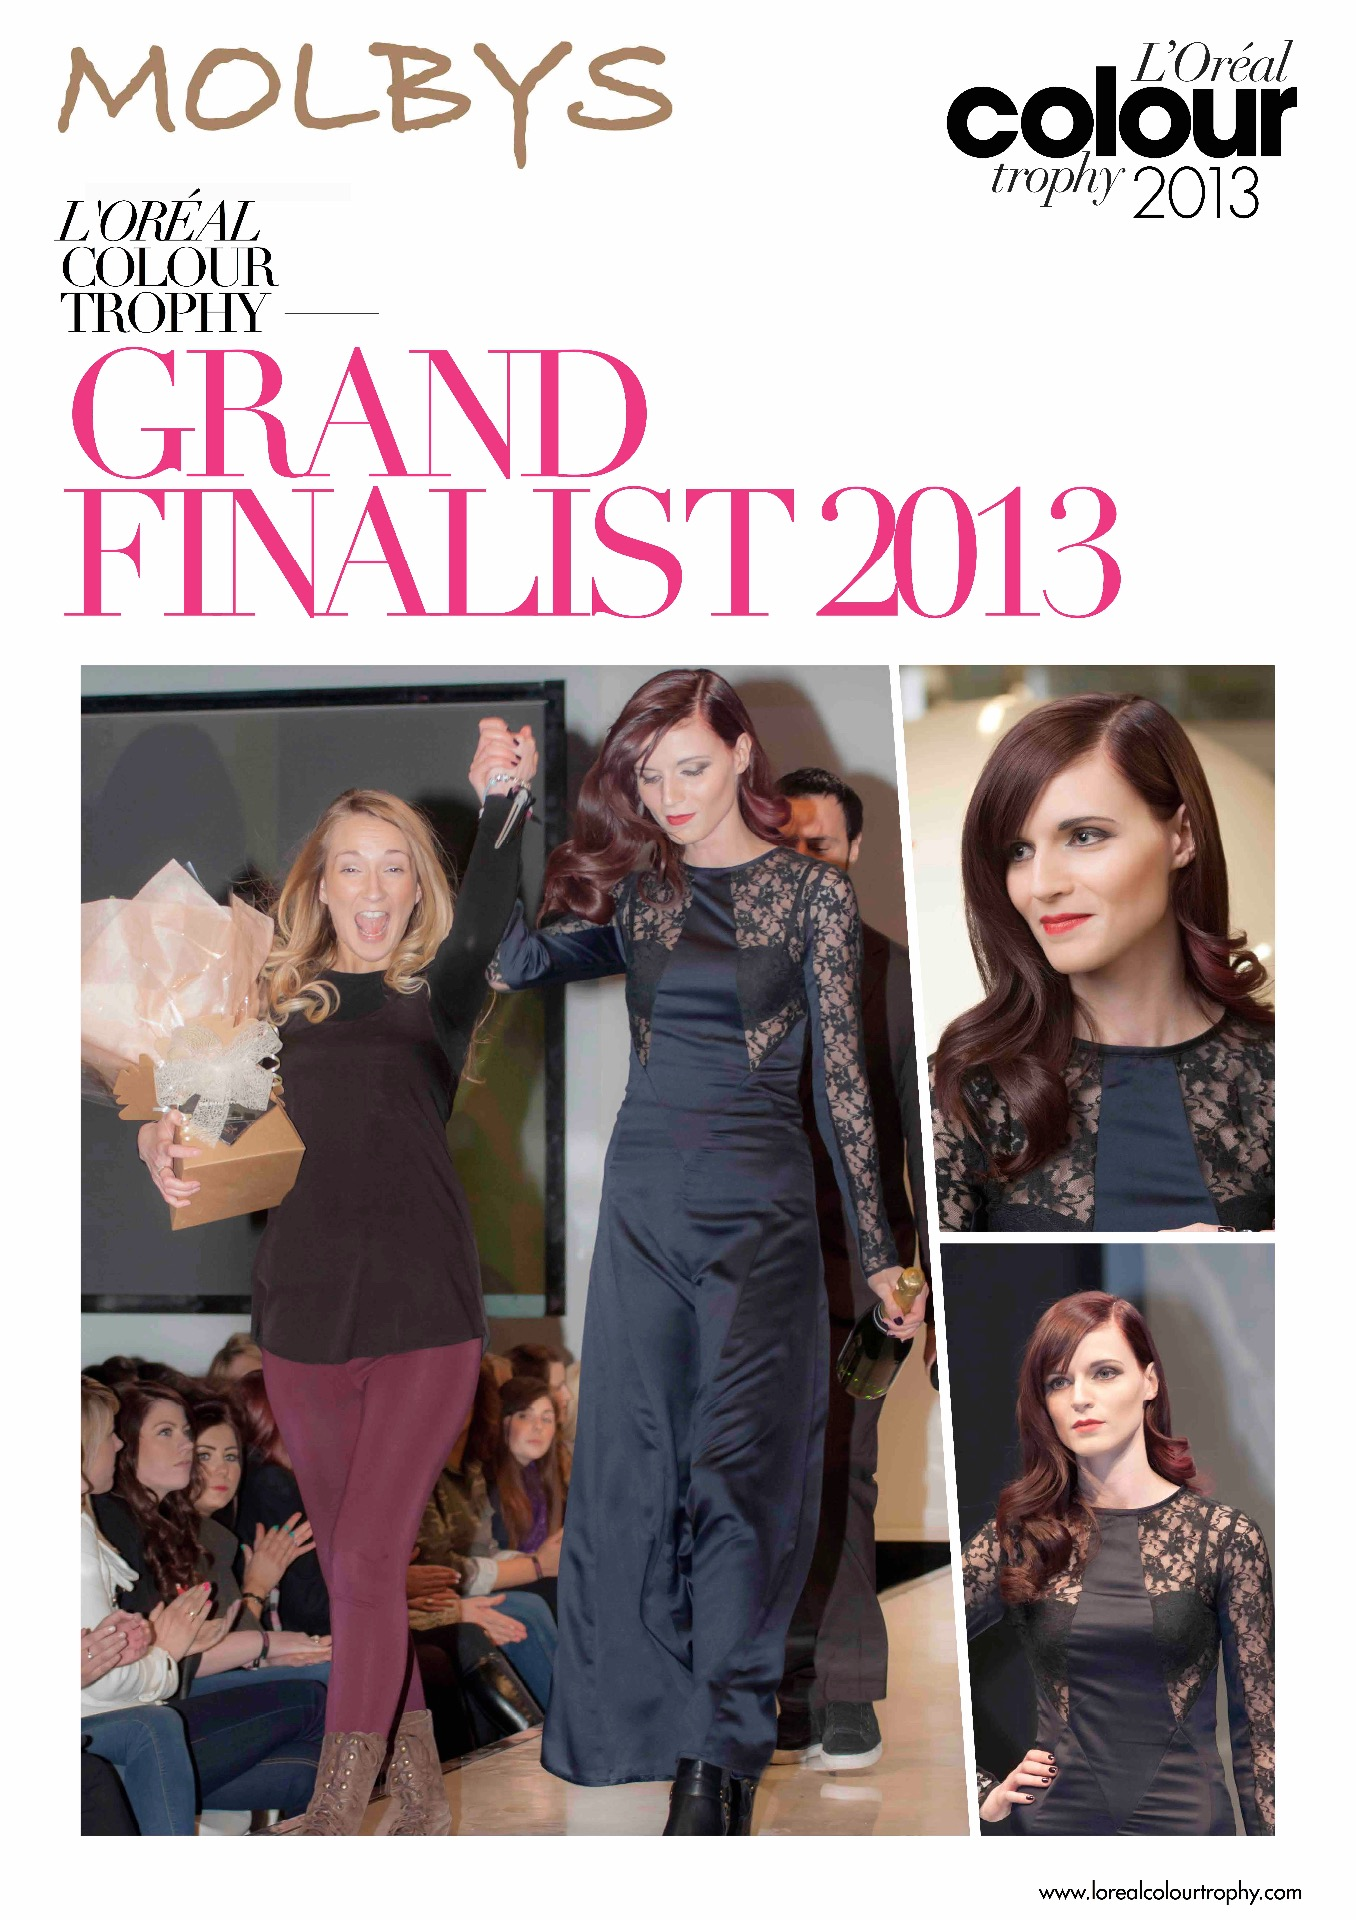 Molbys Grand Finalist L'Oreal Colour Trophy 2013